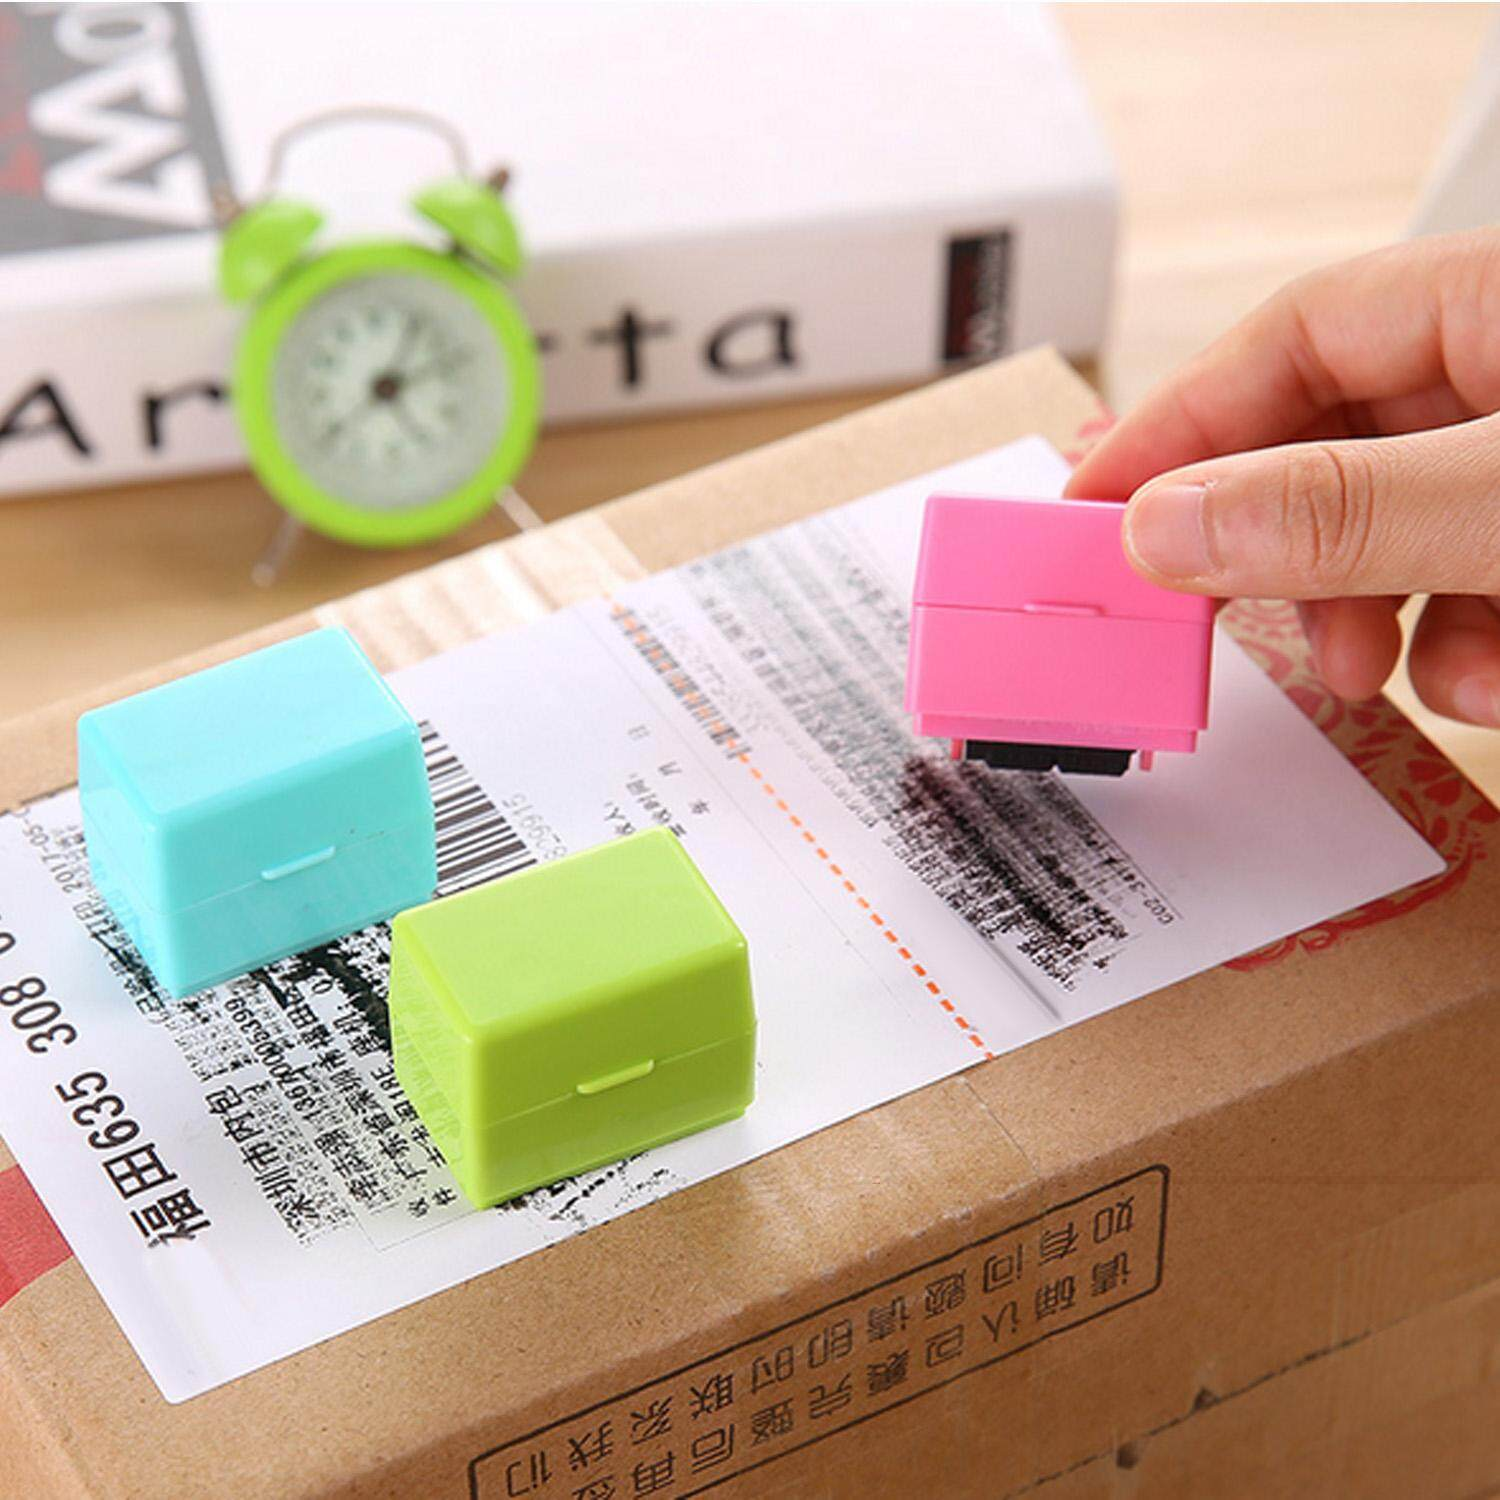 Hình ảnh 3pcs Roller Self Inking Stock Stamp Seal Theft Protection Code Guard ID Confidentiality Confidential Stamp Seal Random Color - intl